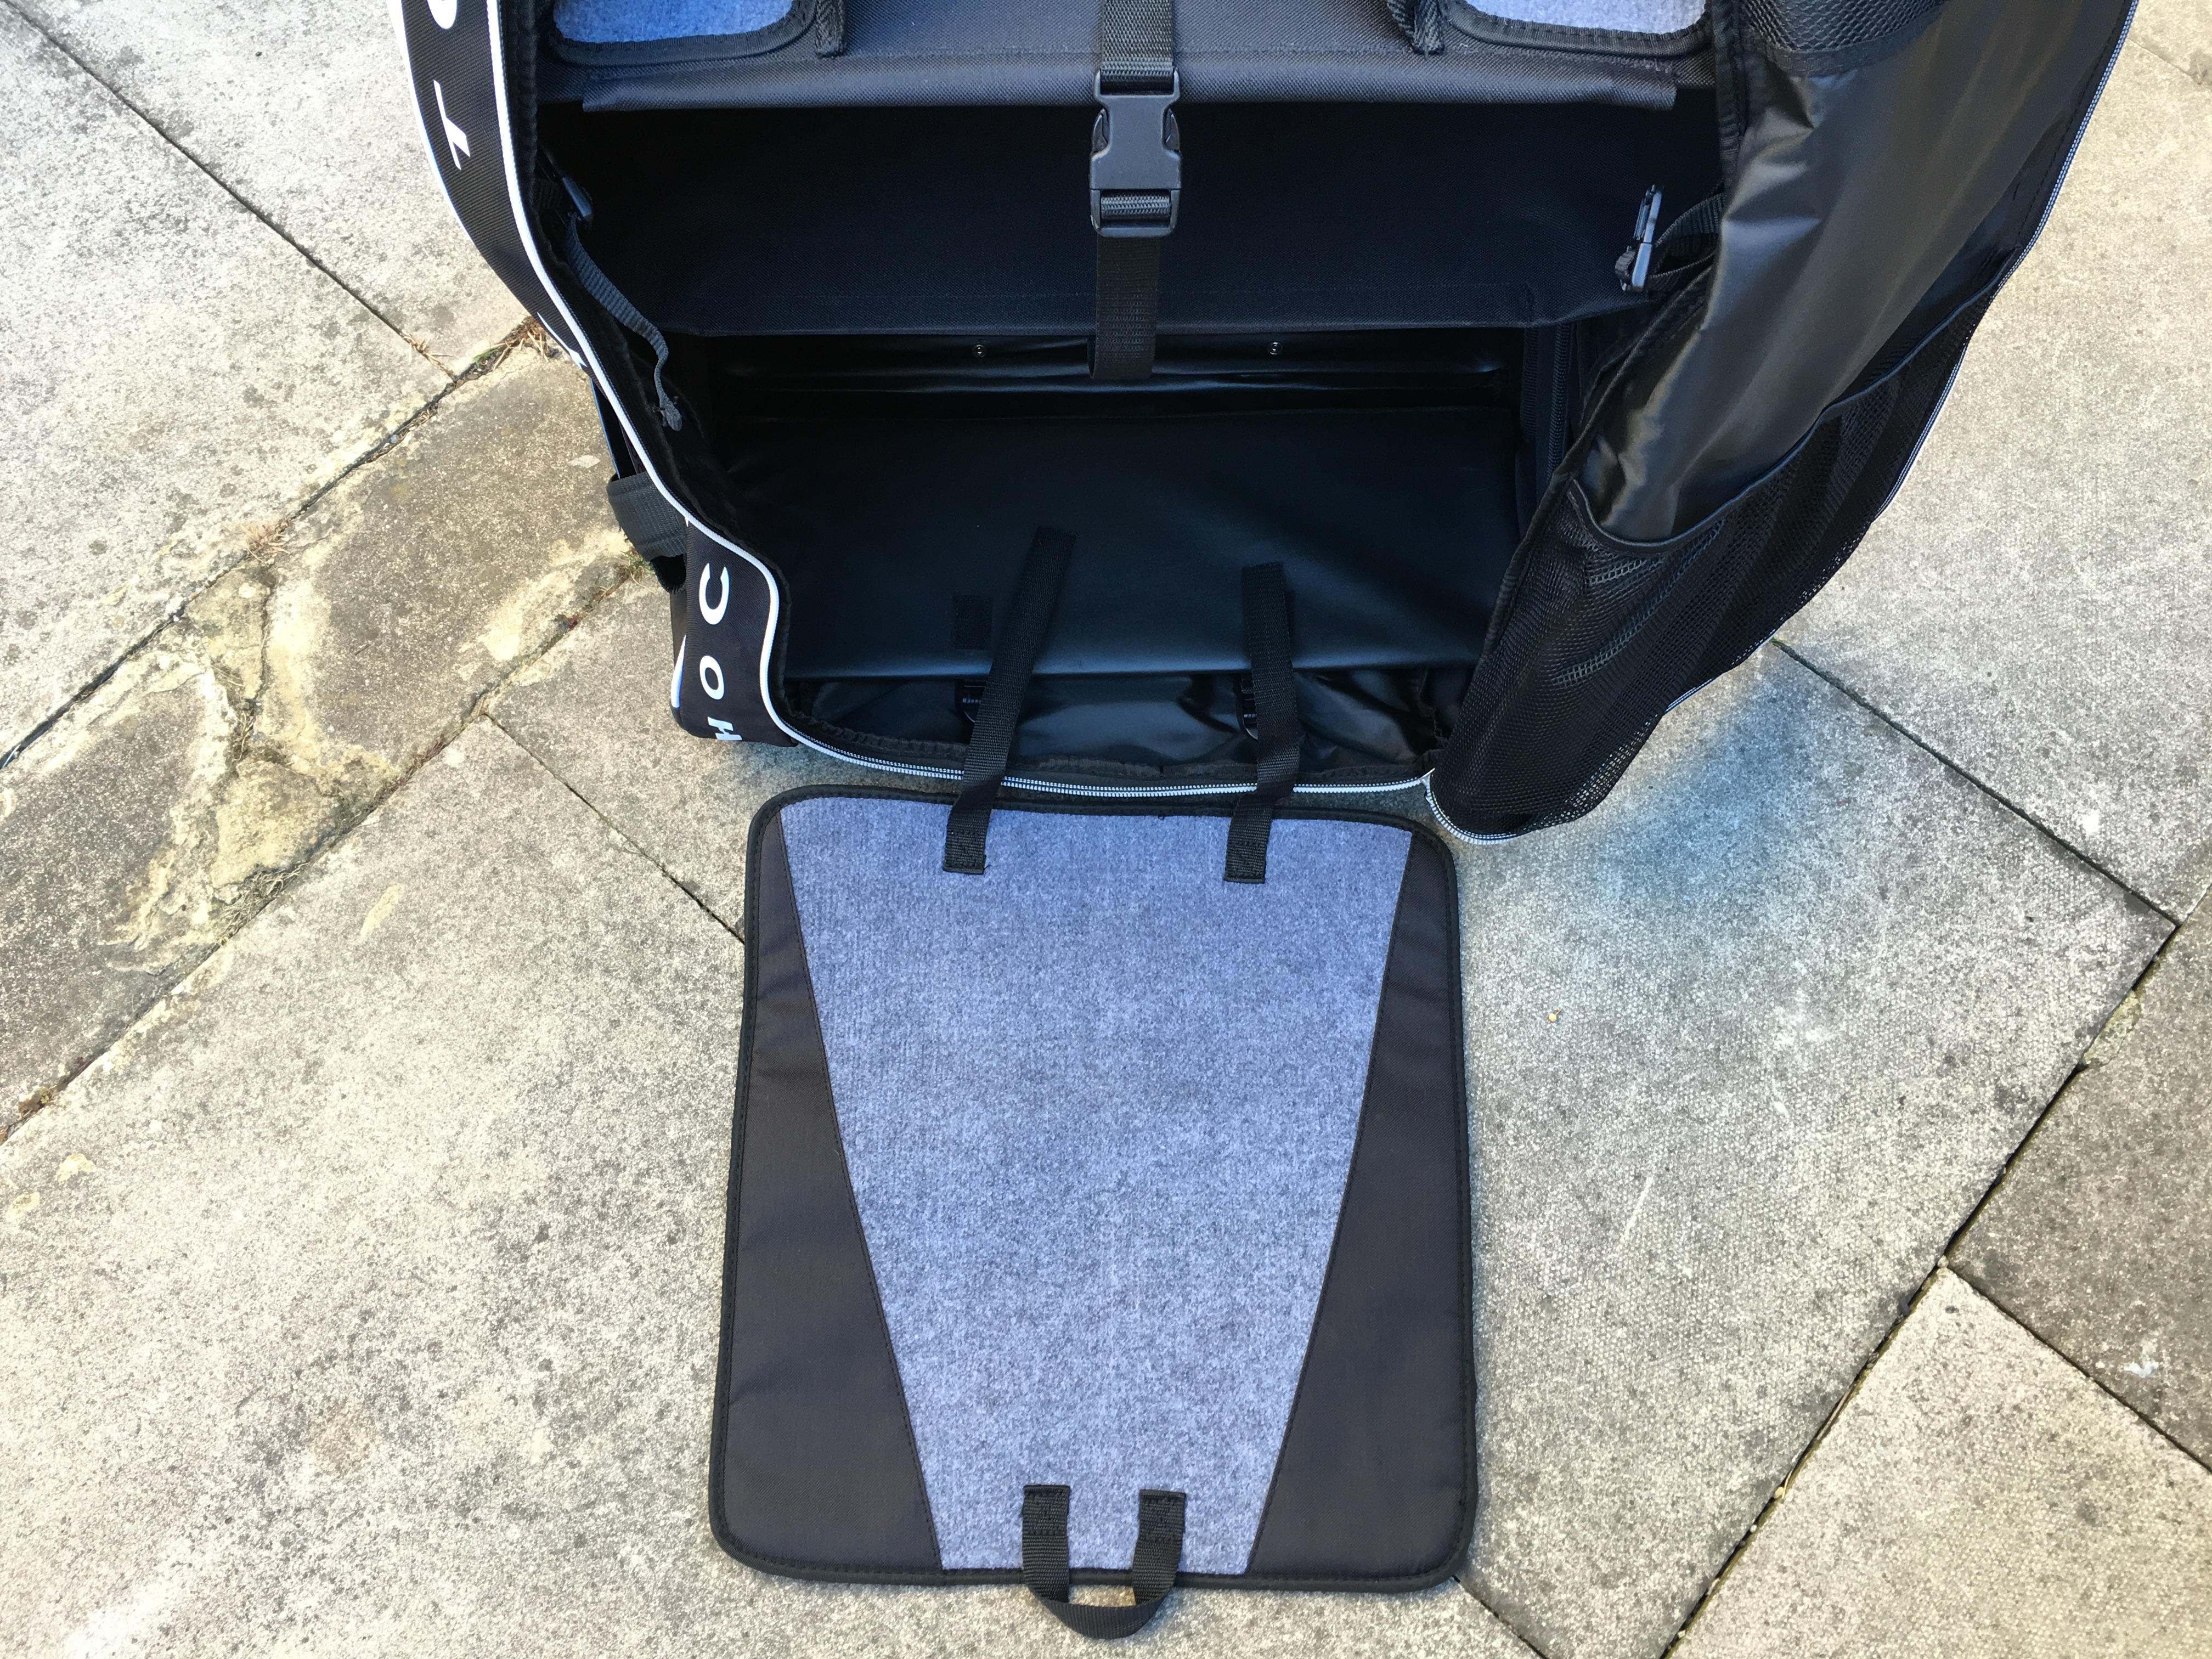 Grit HTSE Tower Hockey bag review9219